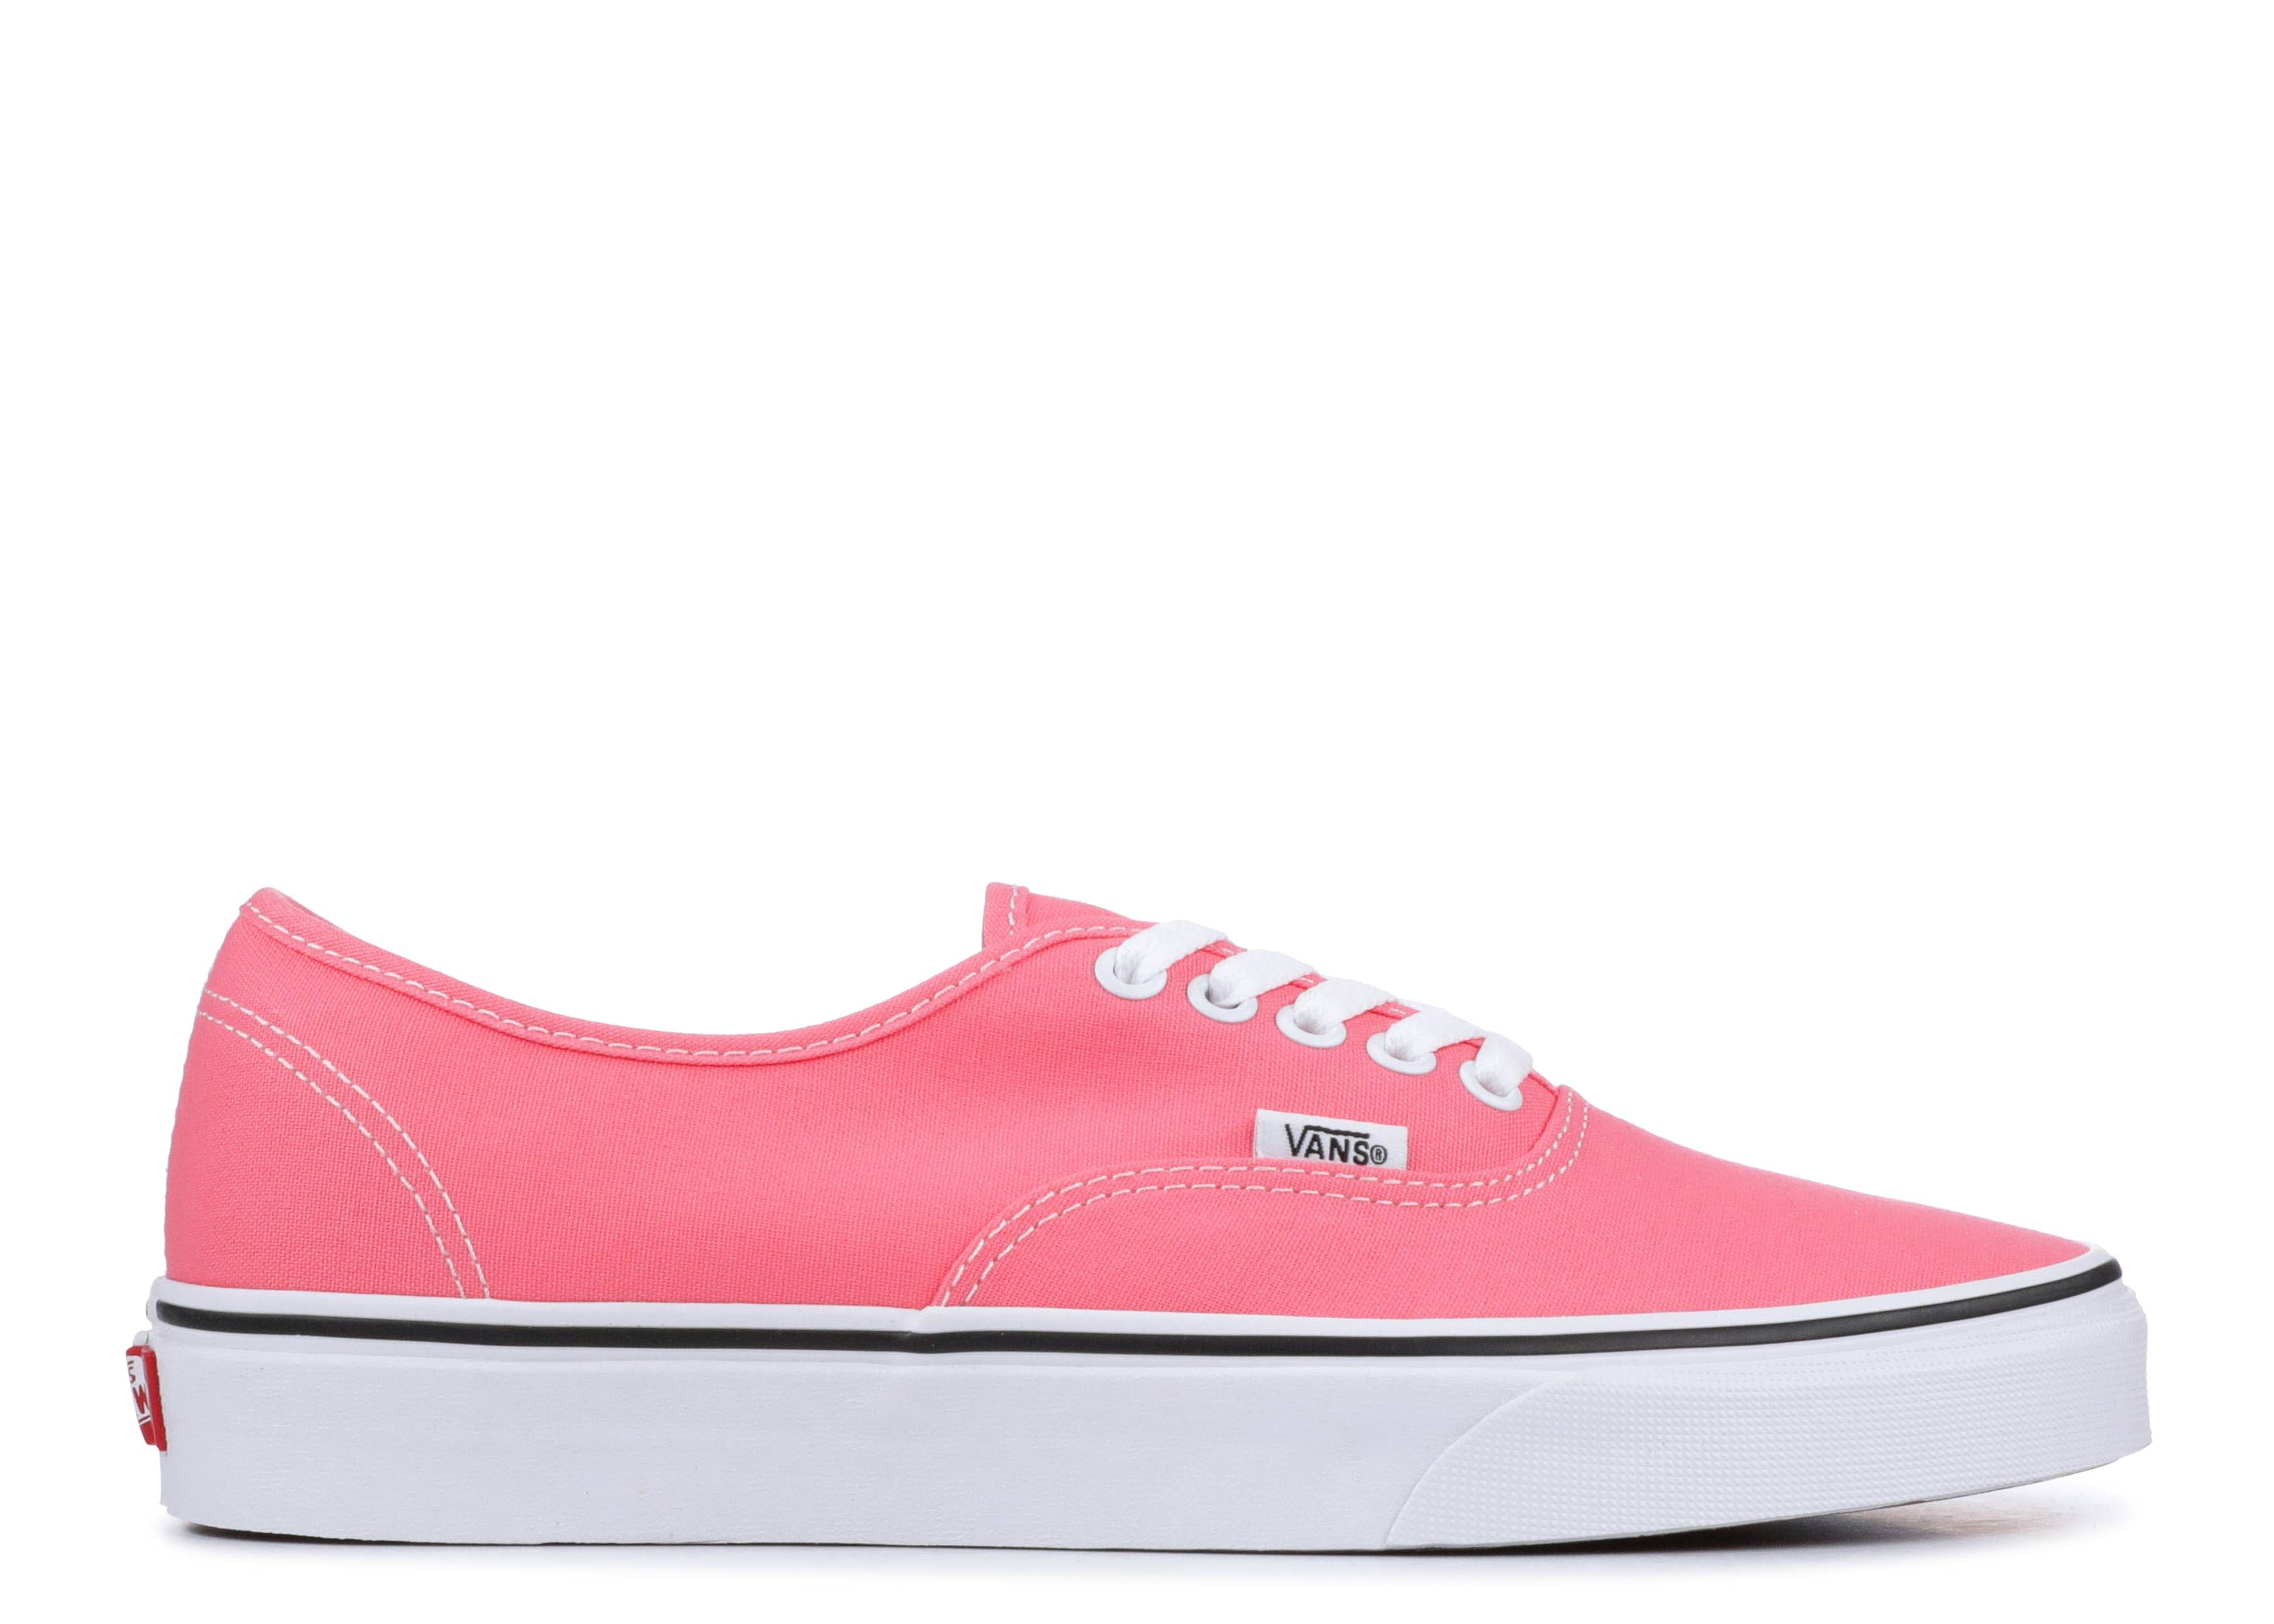 288a795419 Authentic